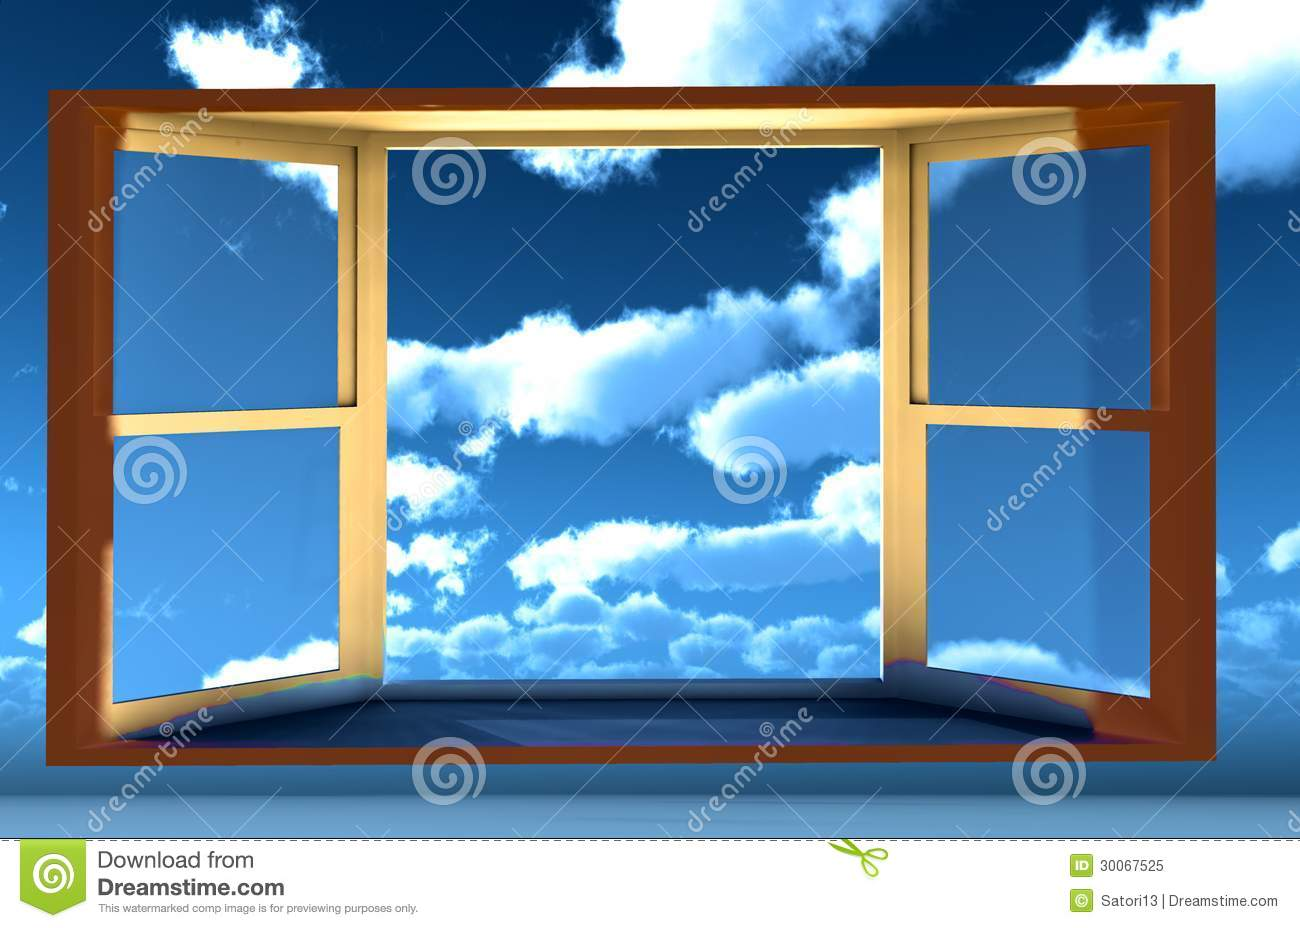 Window of opportunity royalty free stock photo image for Window of opportunity